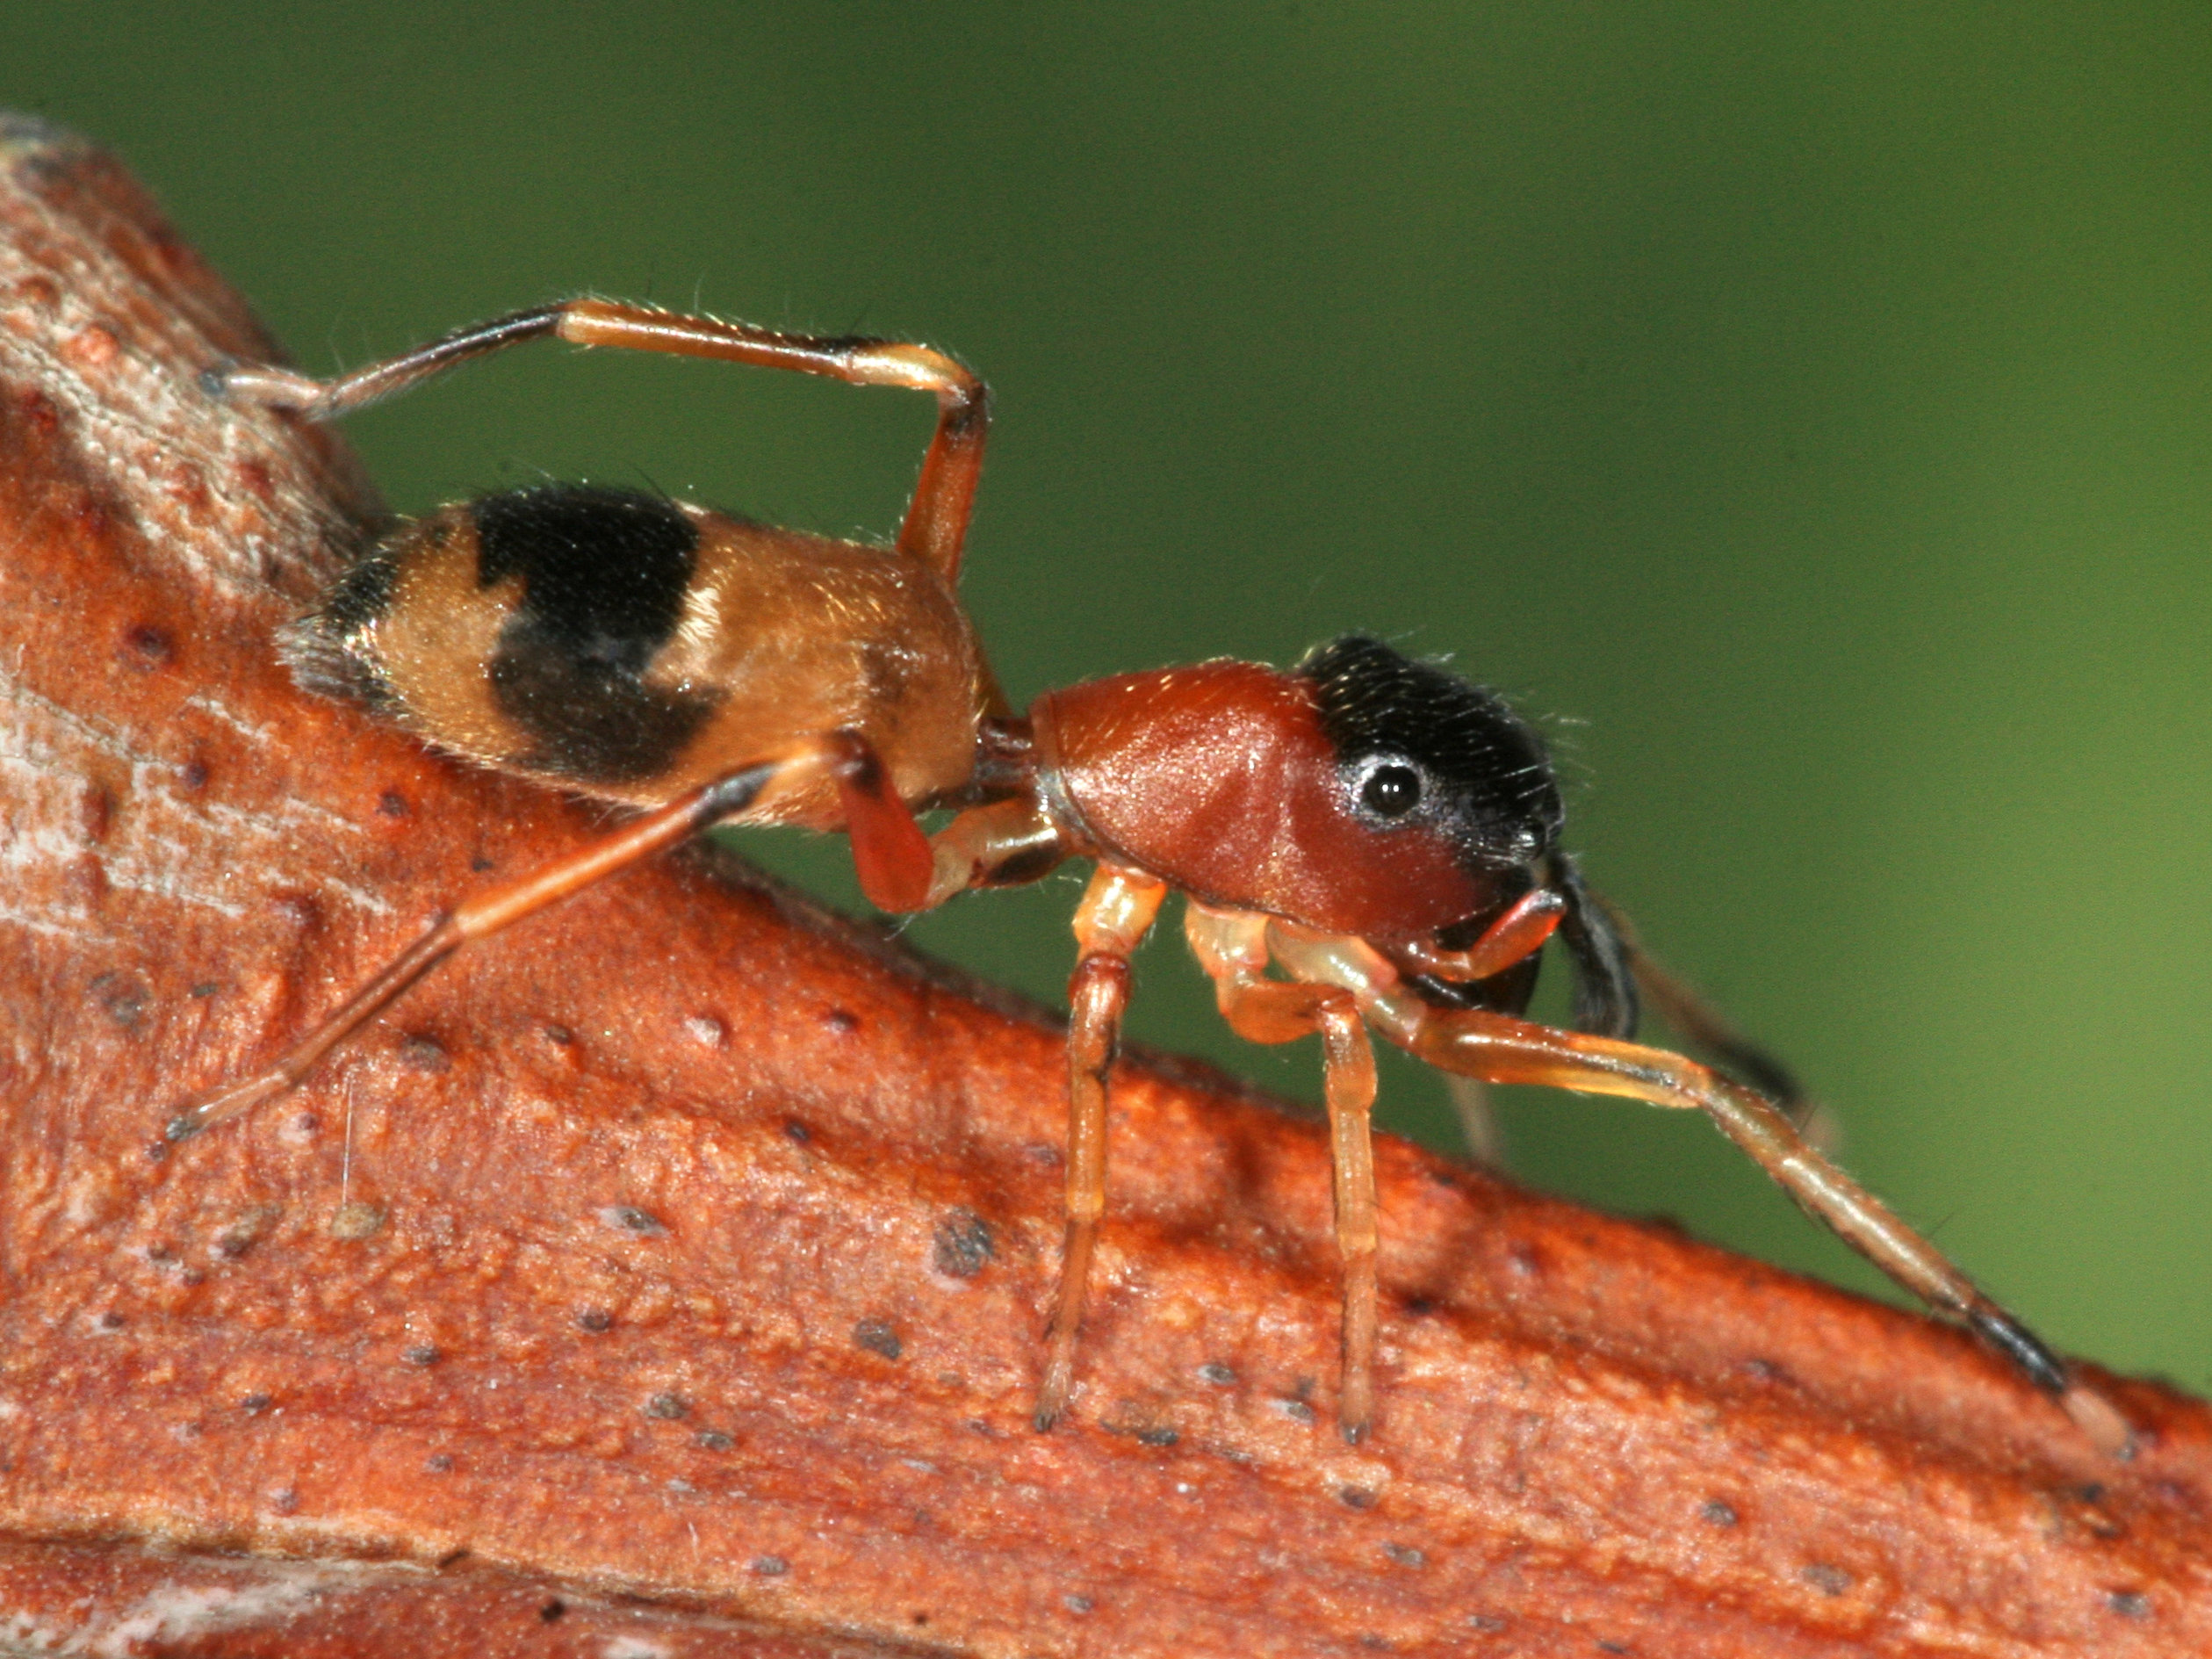 Female ant mimic jumping spider